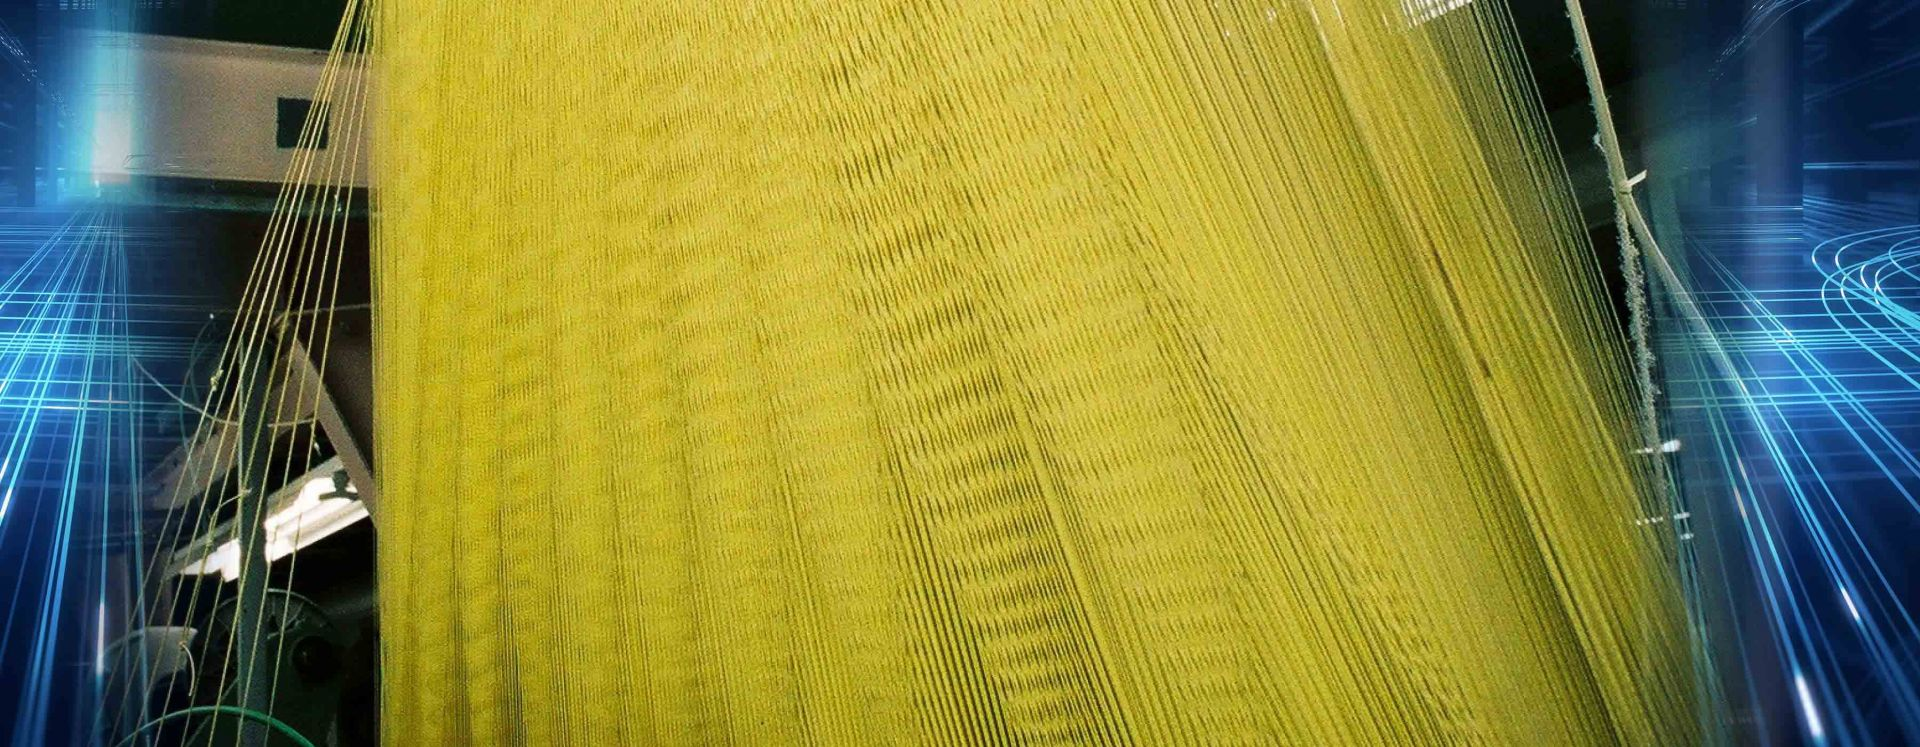 weaving, jacquard